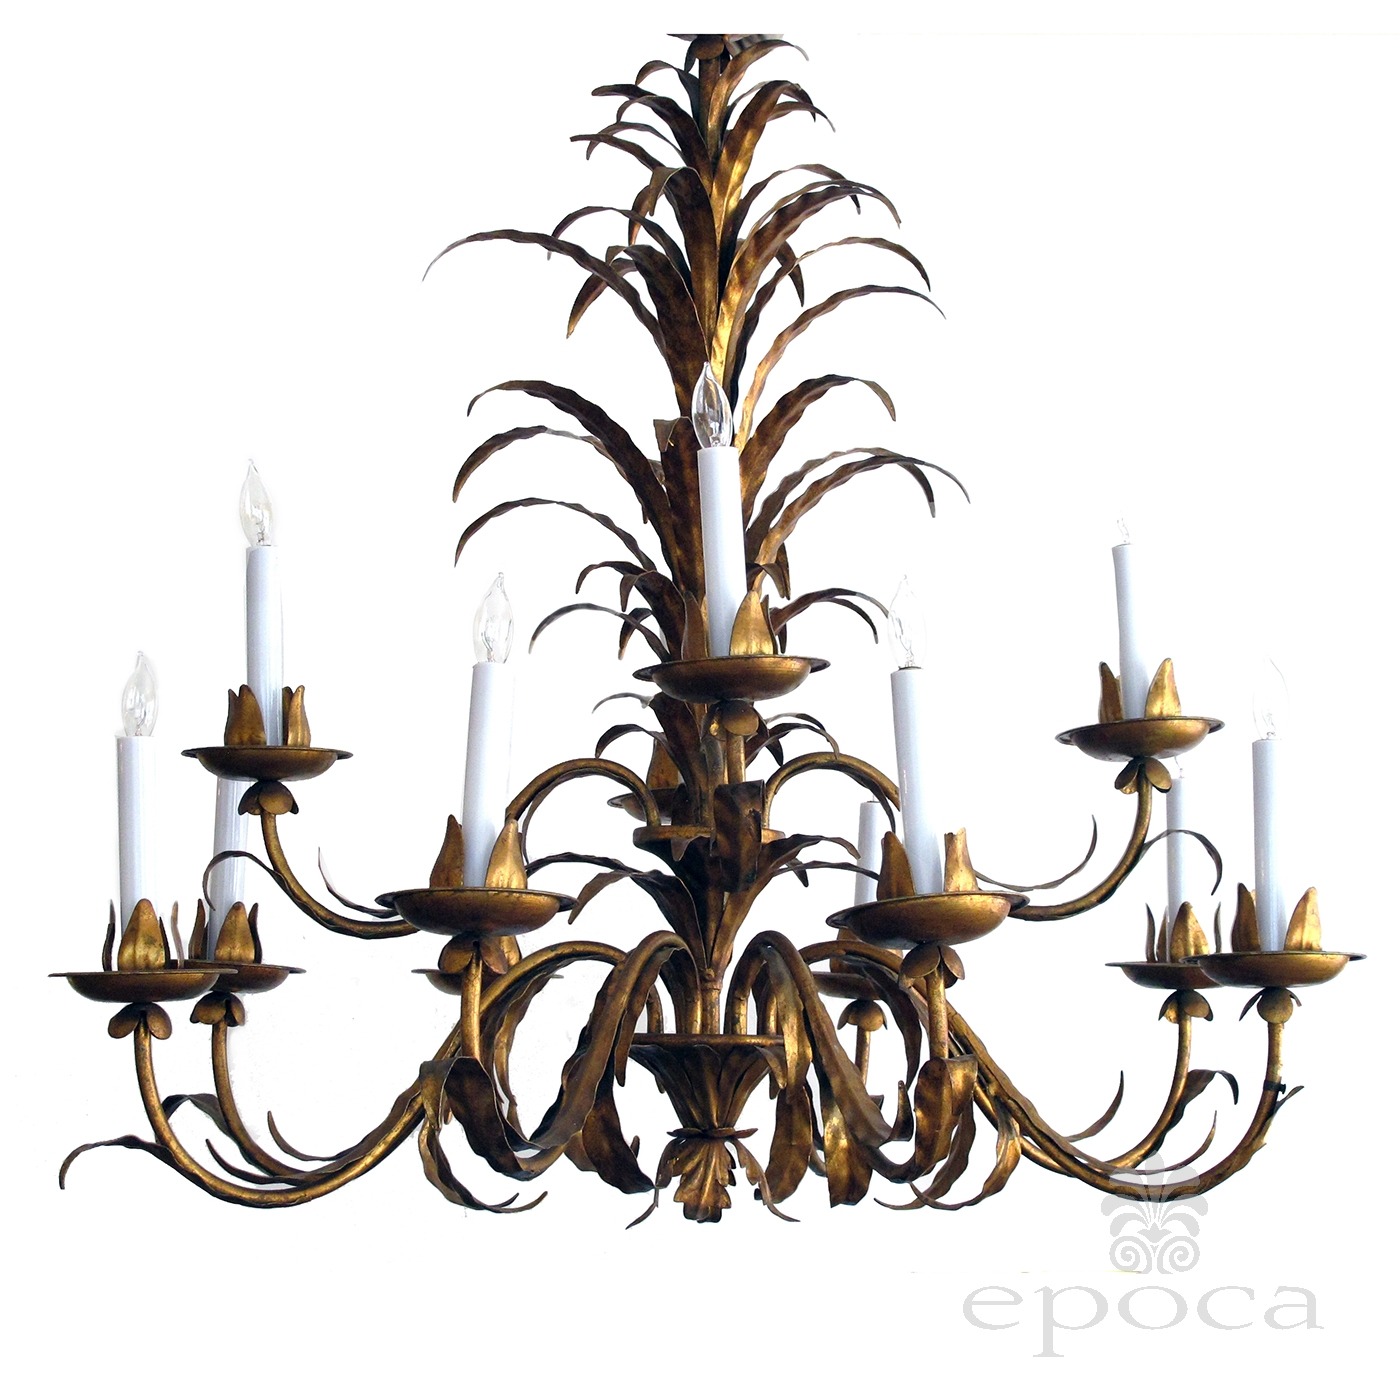 seen root lighting vine linenandlavender p as one new kind antique chandeliers england of circa venice net obsolete chandelier a via on